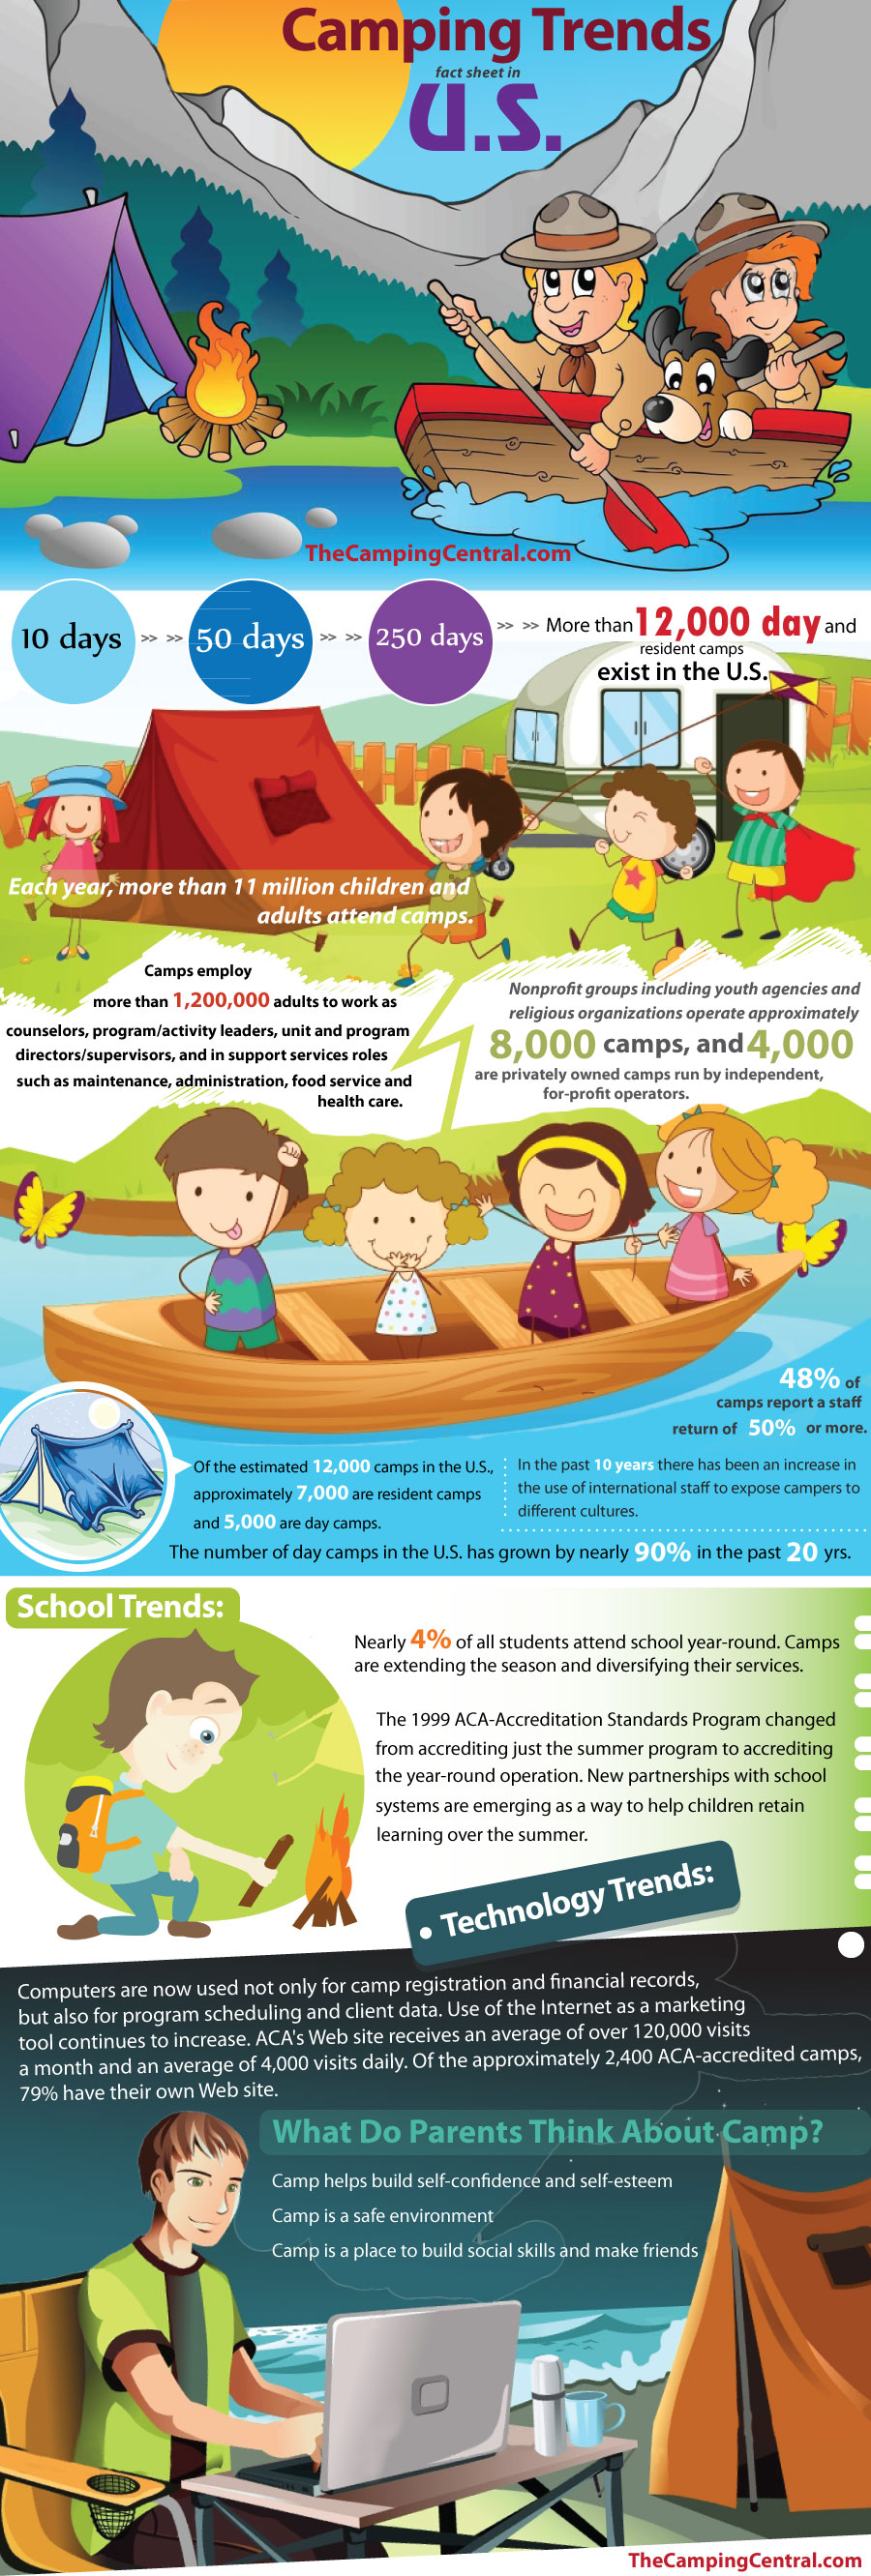 Camping Trends Fact Sheet in U.S.